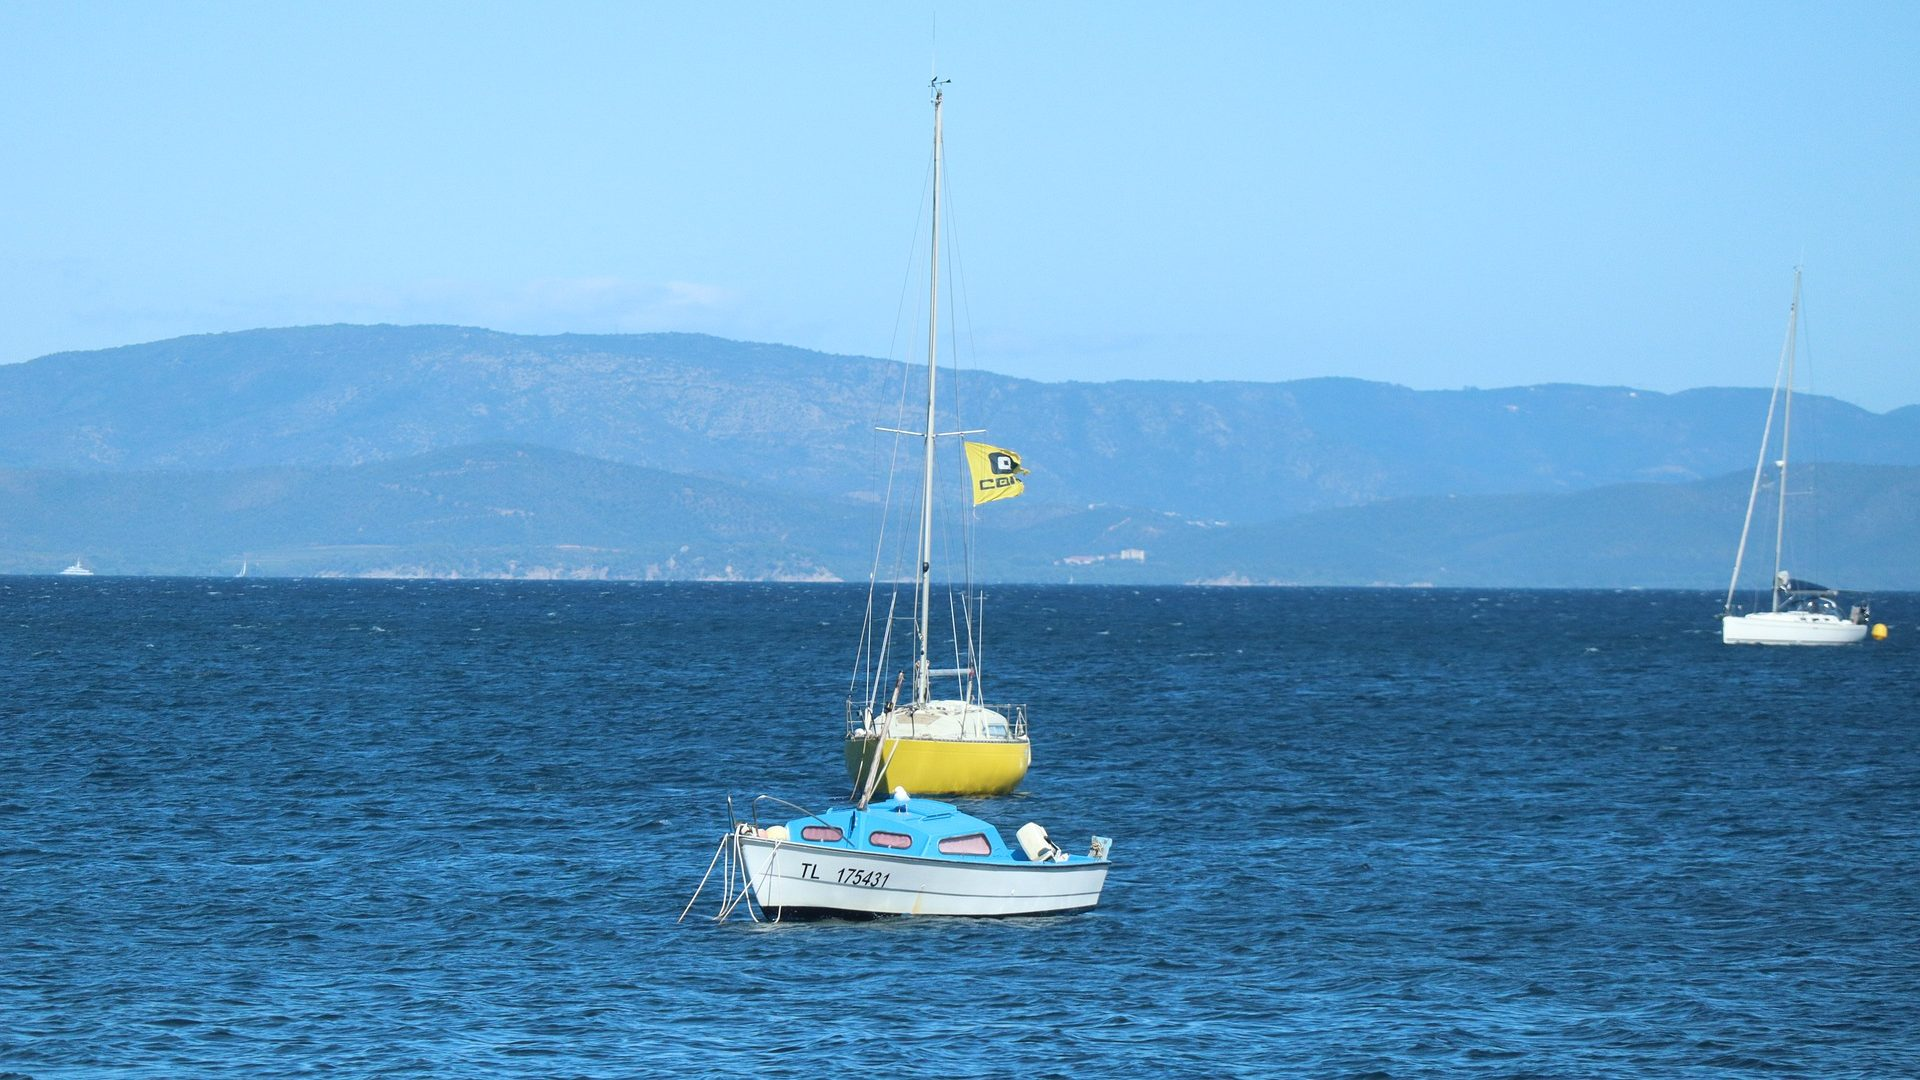 France-Obseques-Agence-Hyeres